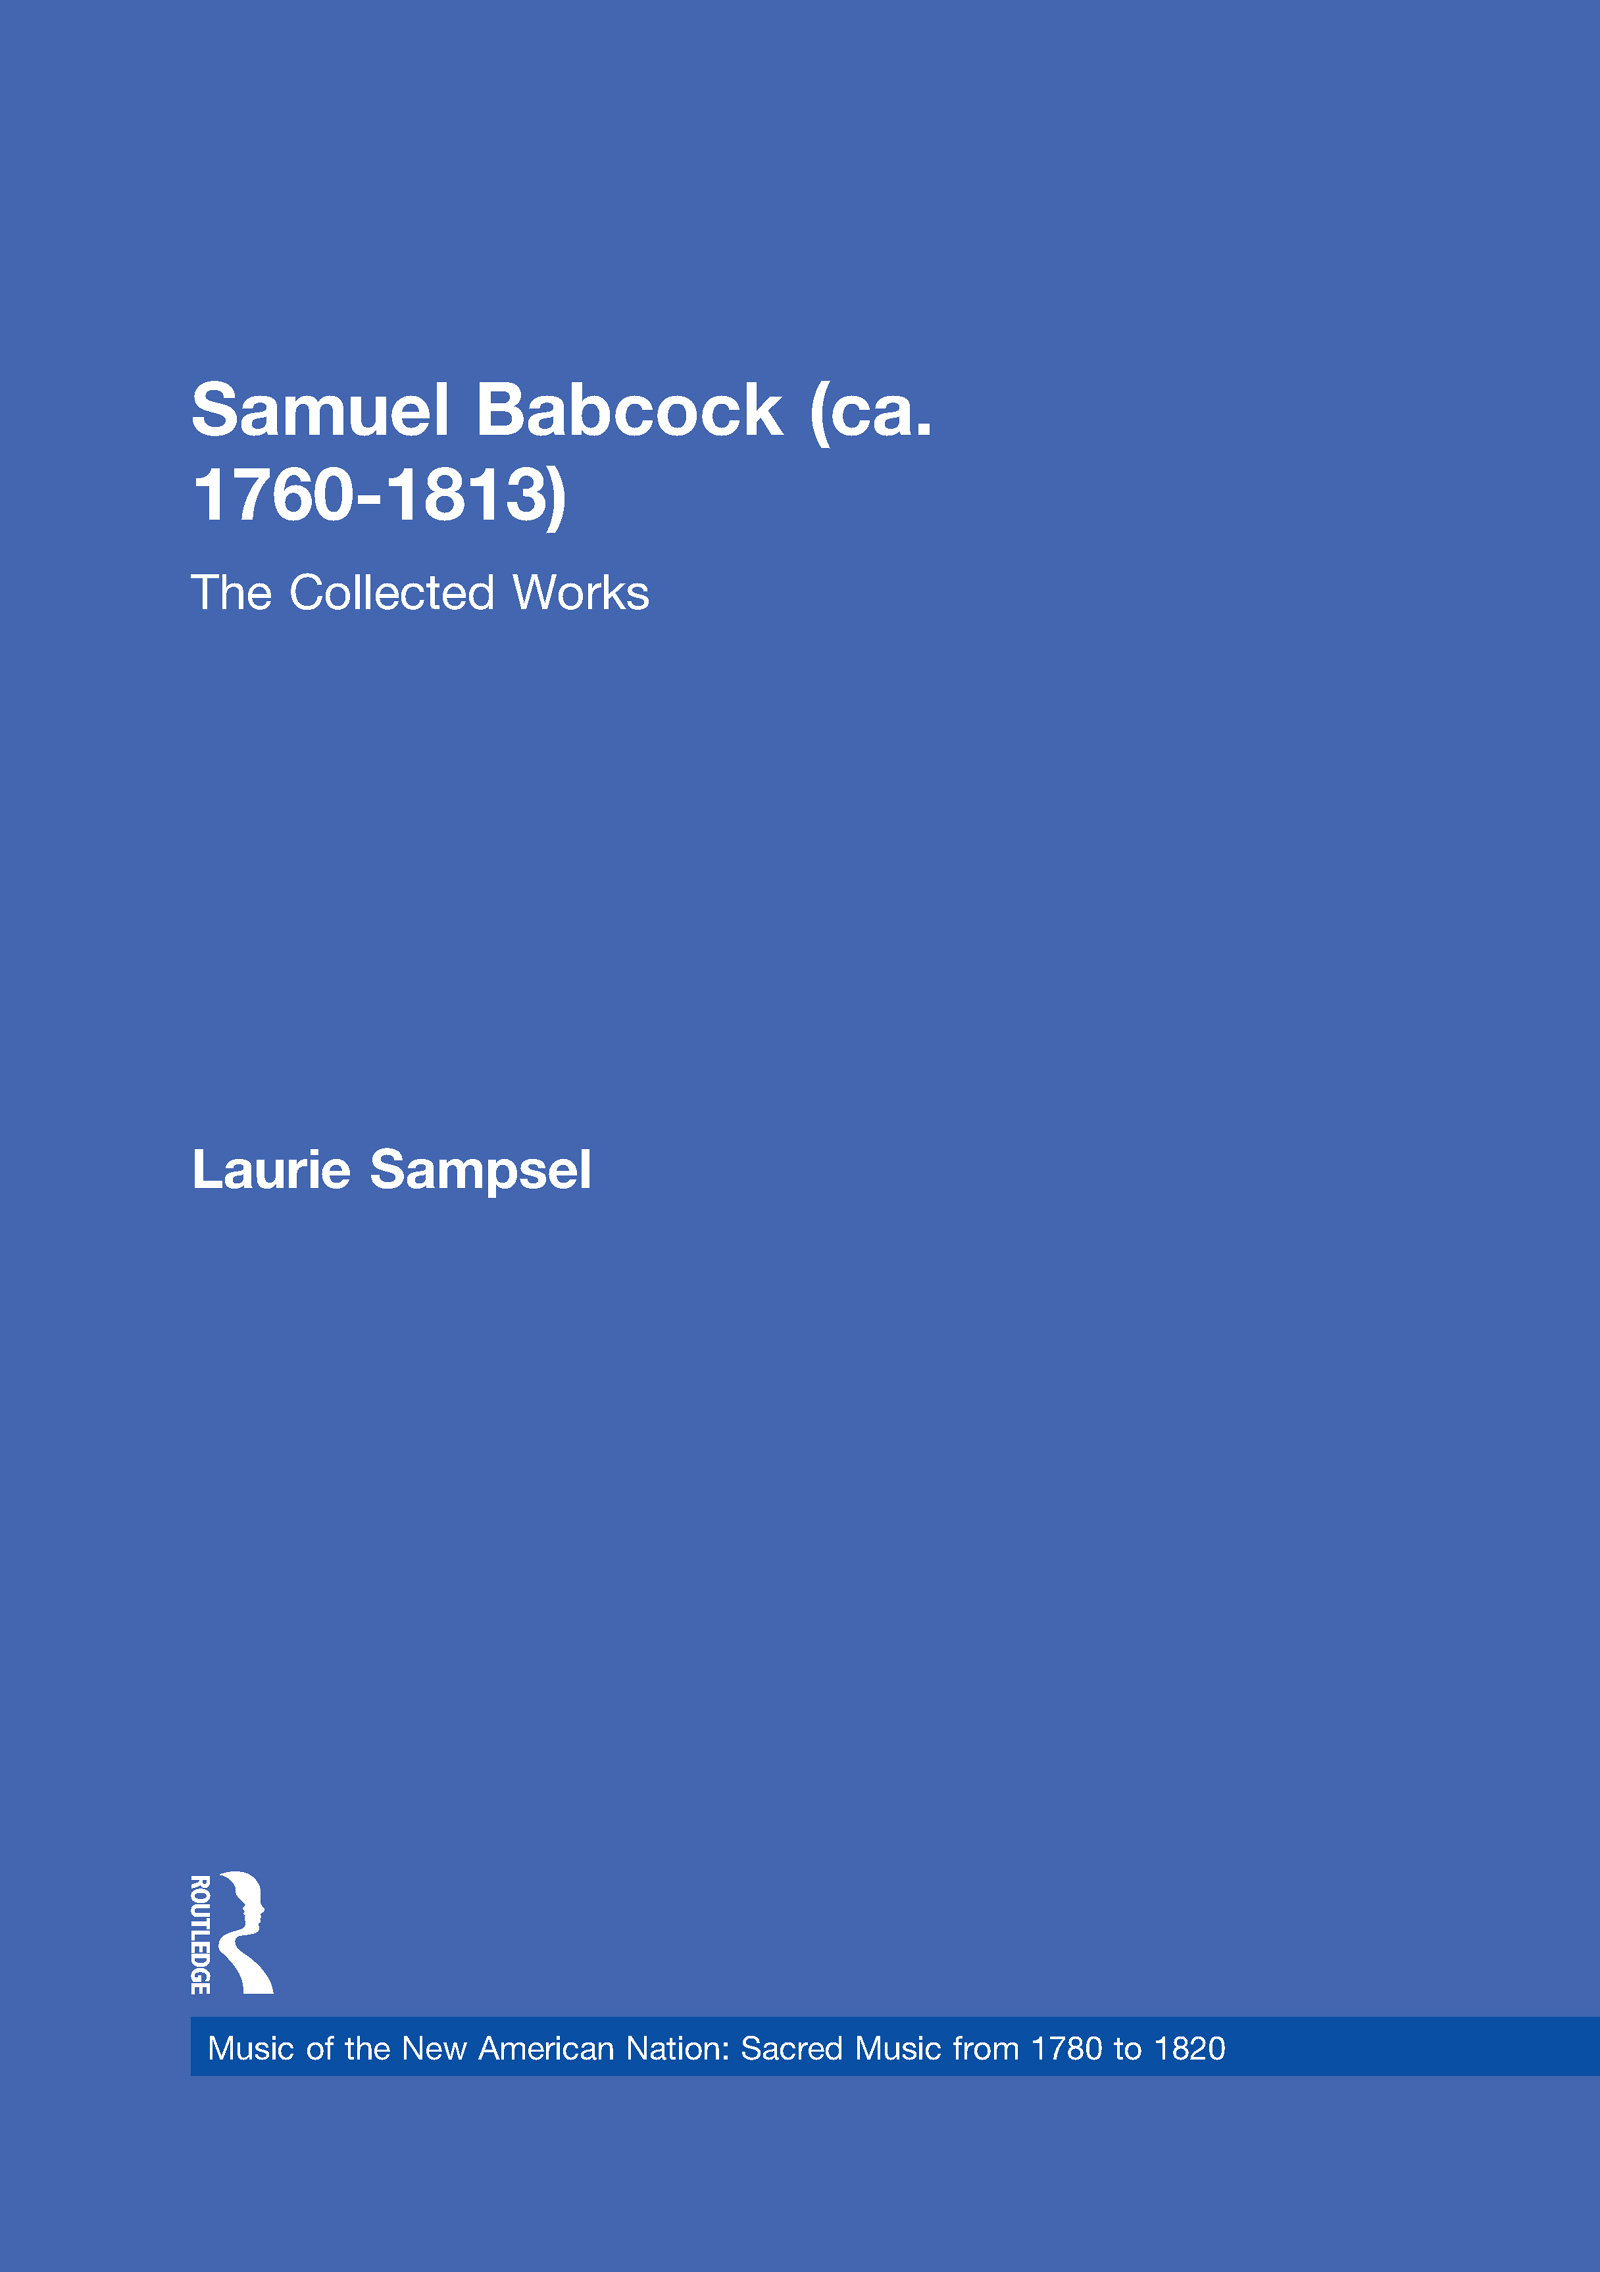 Samuel Babcock (ca. 1760-1813): The Collected Works (e-Book) book cover